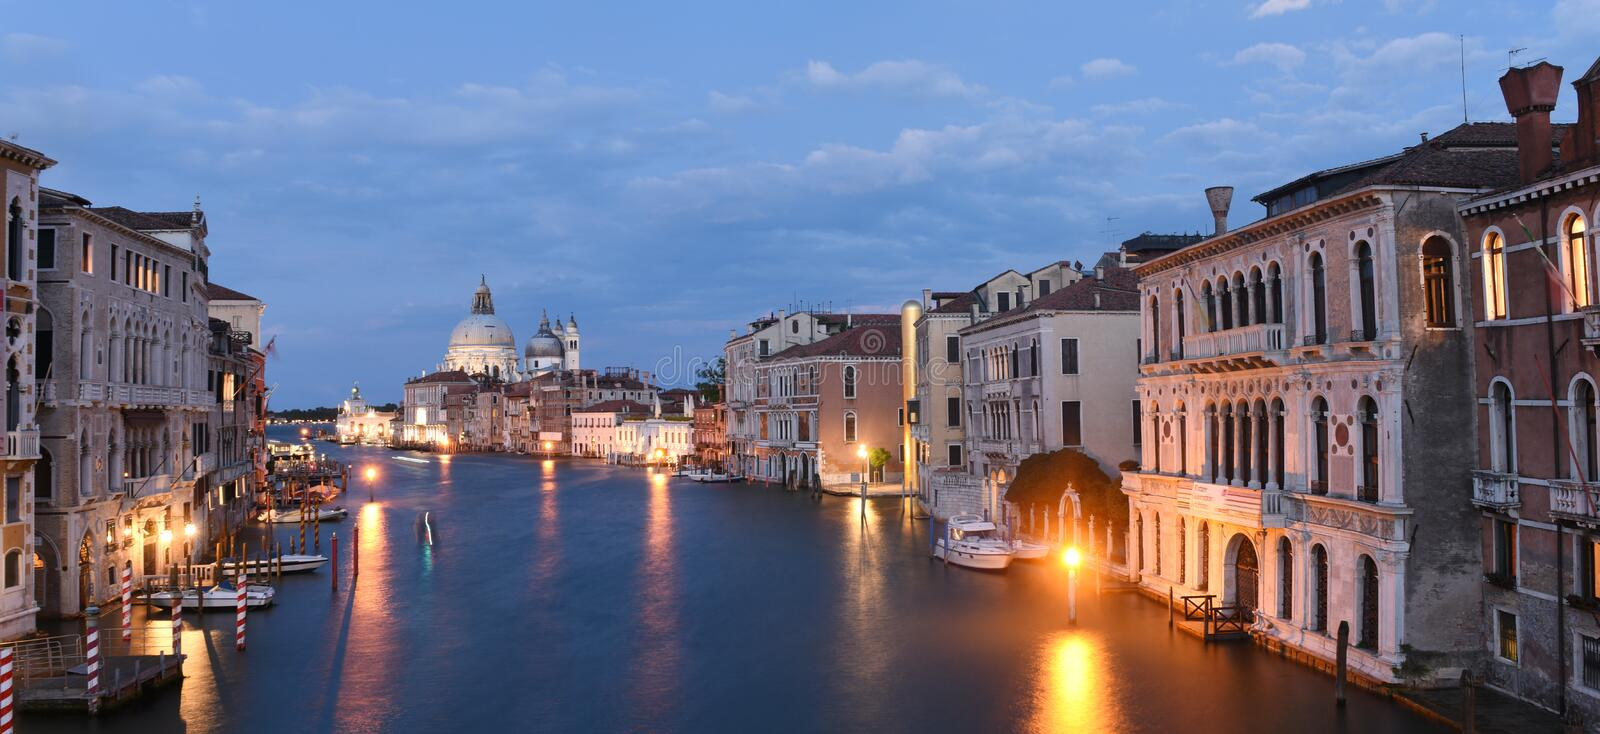 Venice panorama at night with Grand Canal and Basilica Santa Mar stock photography